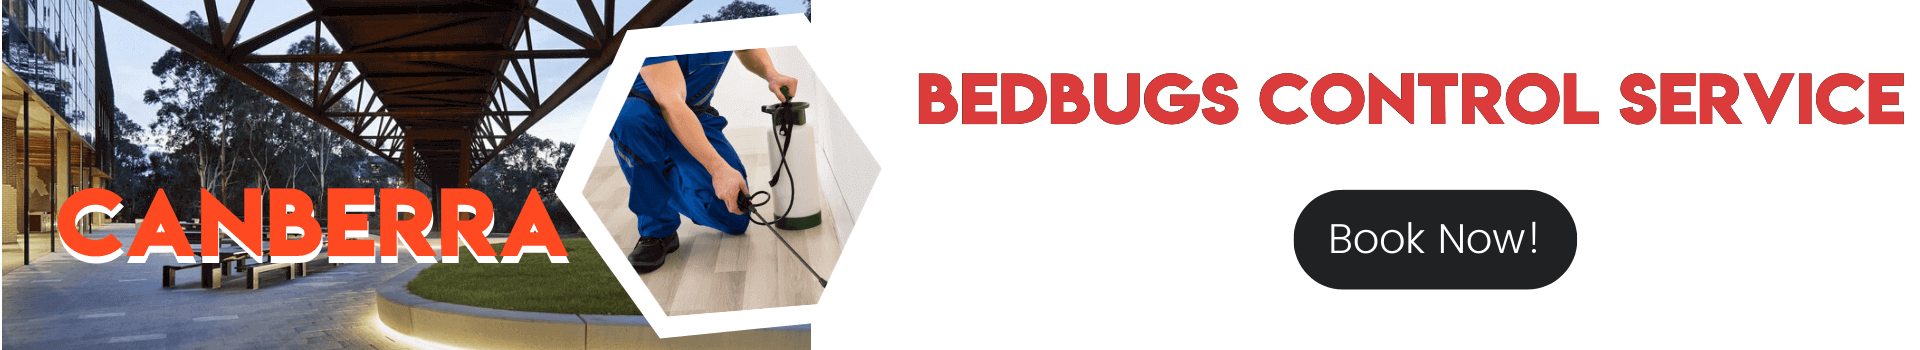 Bedbugs Control Canberra